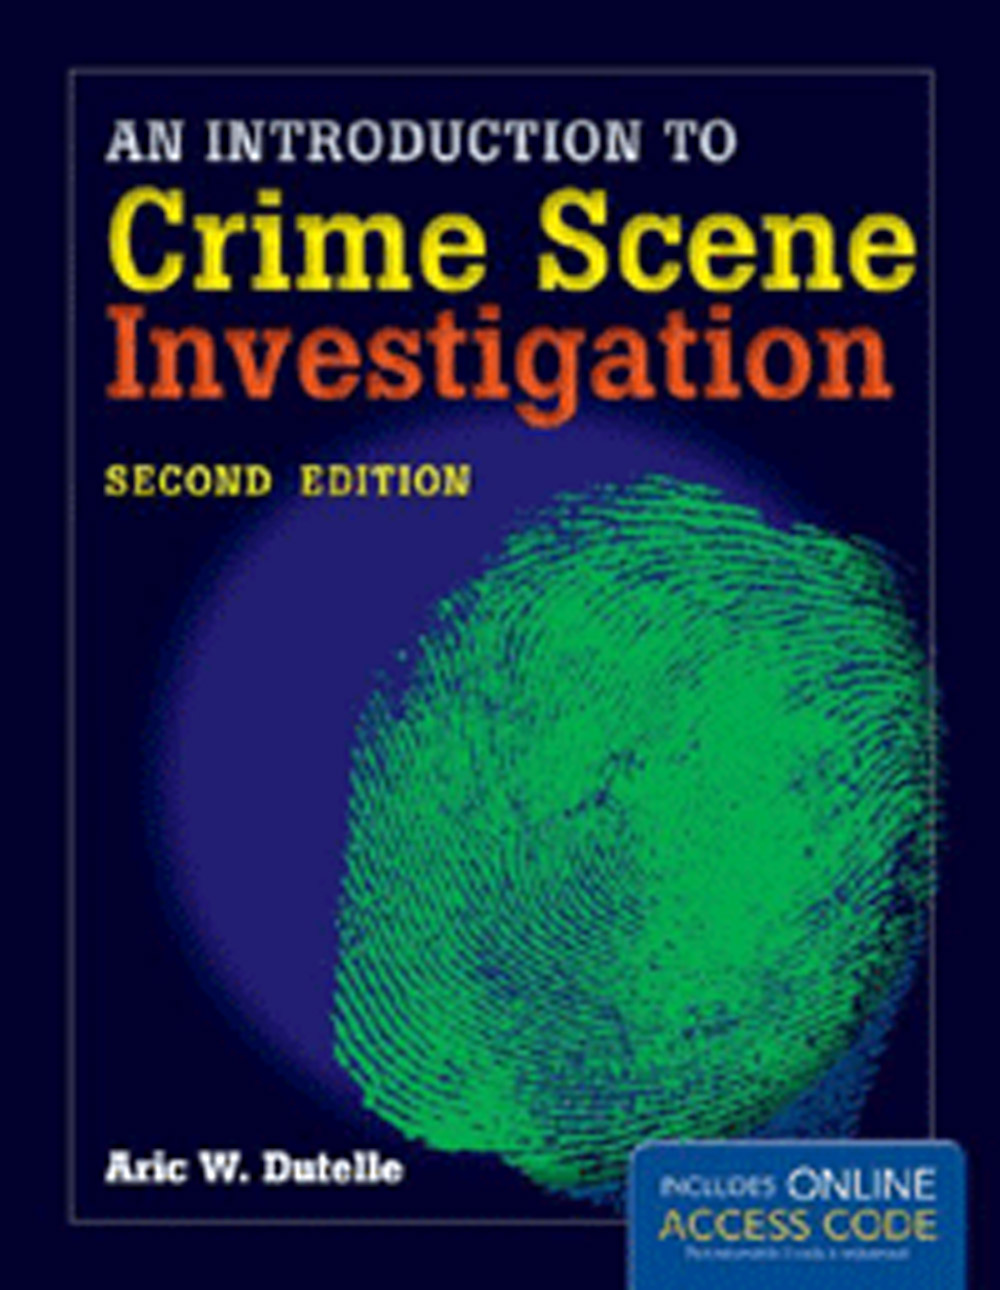 Introduction To Crime Scene Investigation Second Edition Pi Angie39s List Tip Older Homes With Defective Circuit Breakers Magazine Trade Publication For Private Investigatorspi